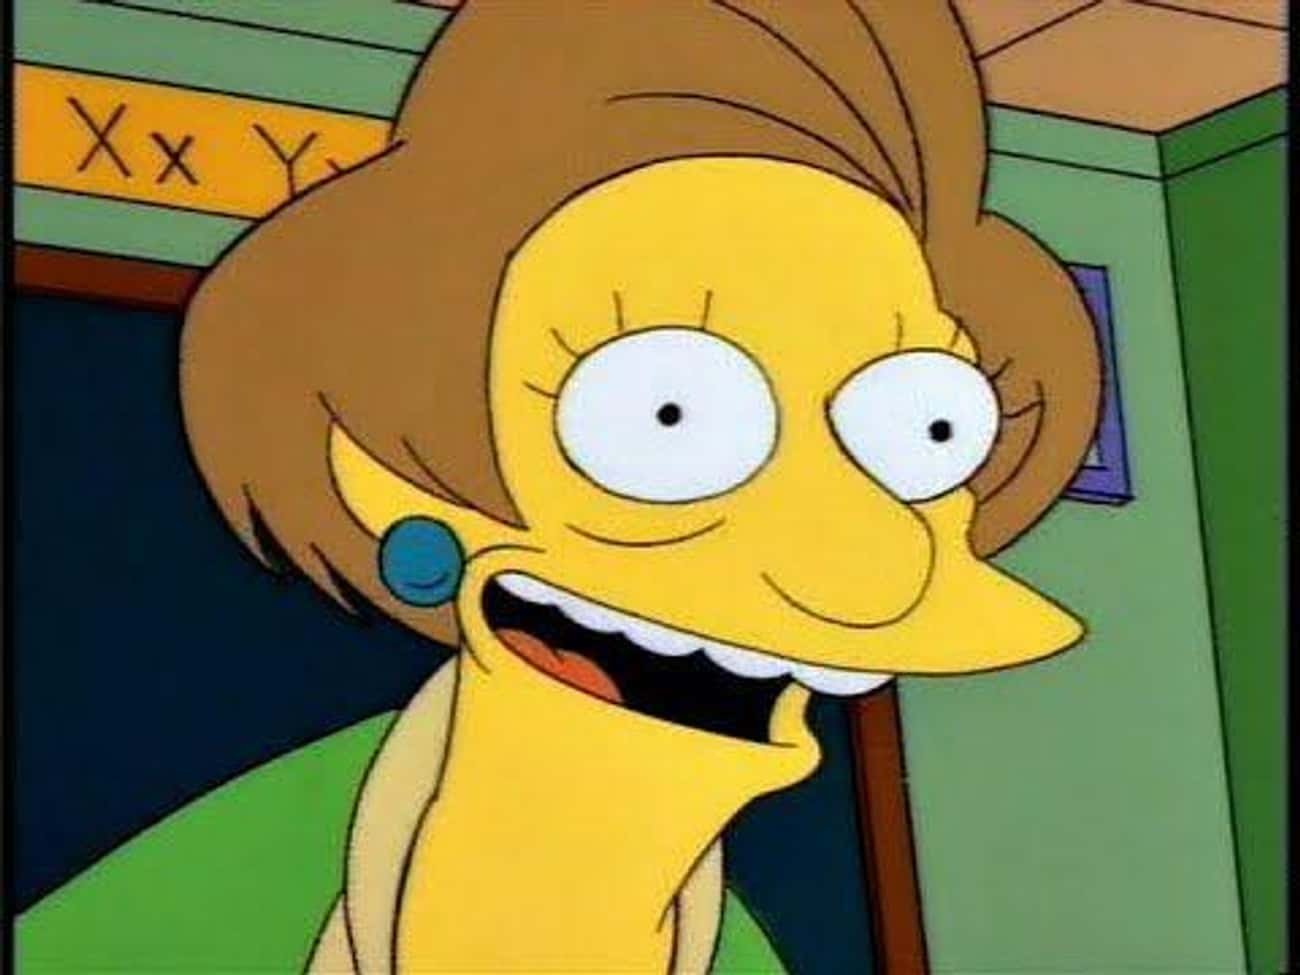 The 25 Best Edna Krabappel Quotes from The Simpsons